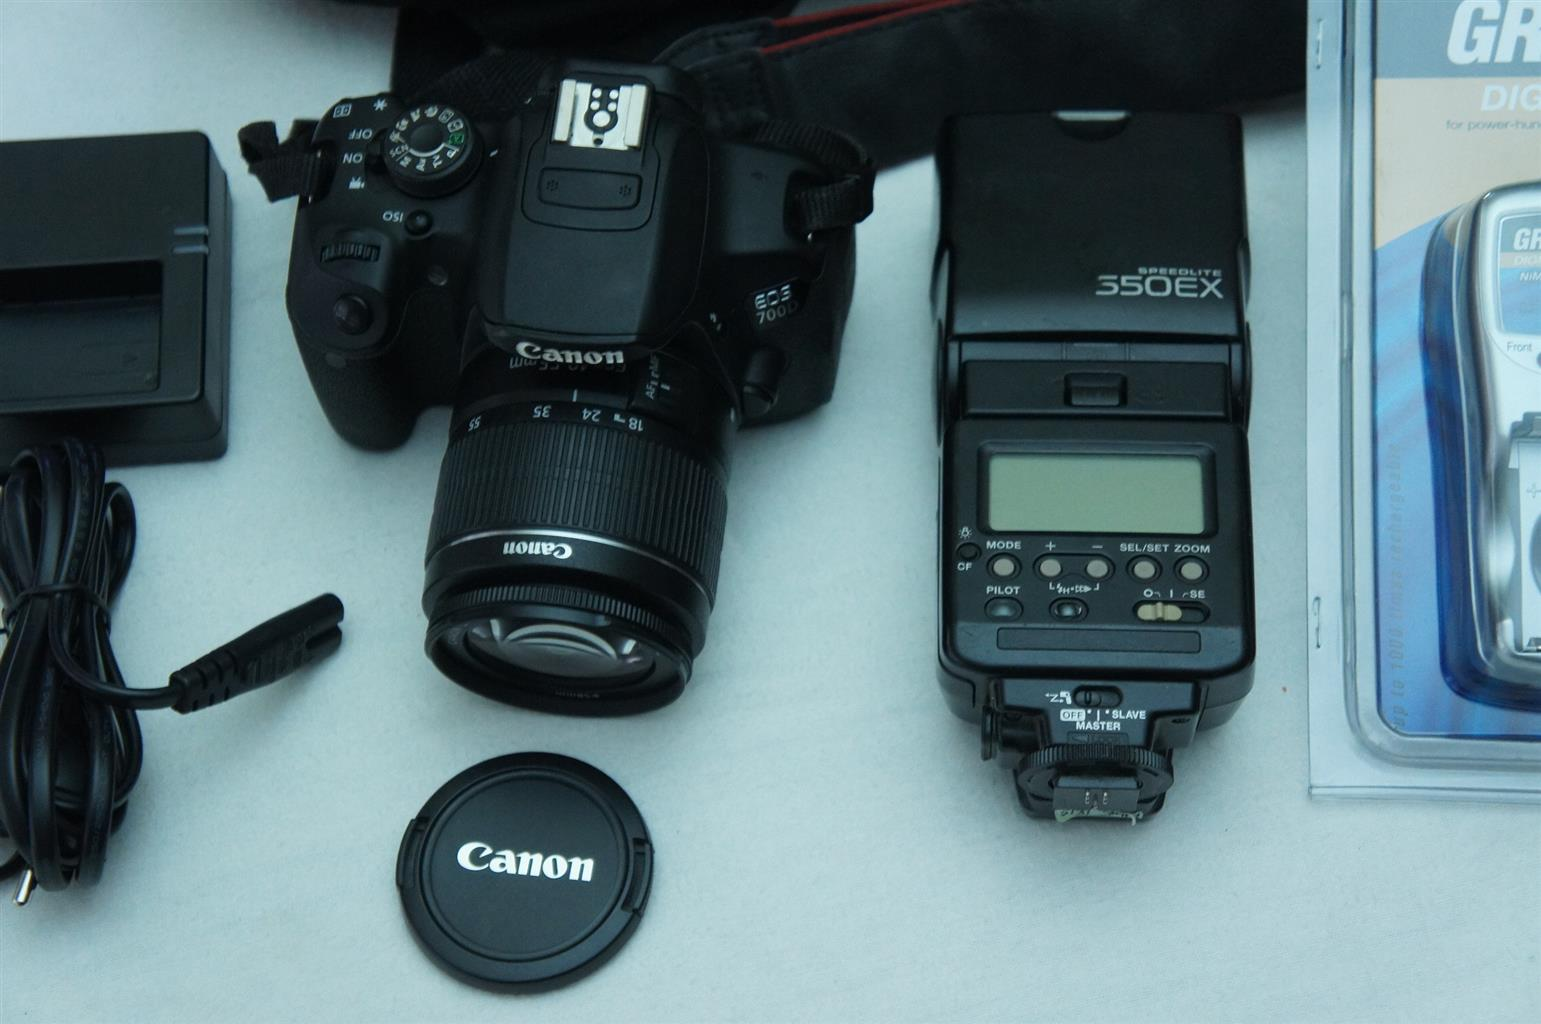 Canon EOS 700D DSLR with Canon 18-55mm and Flash